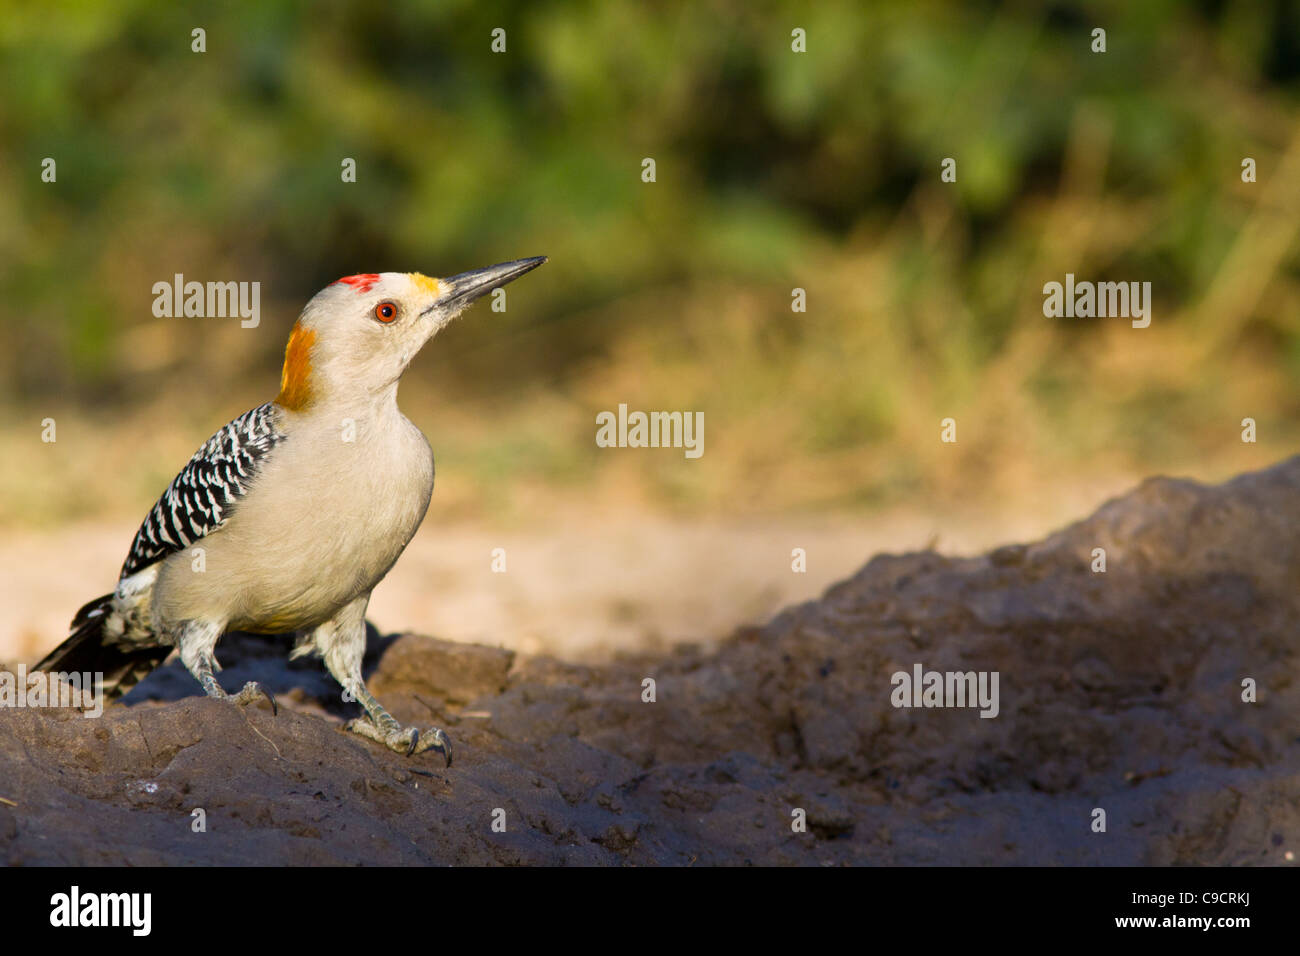 Golden-fronted Woodpecker, Melanerpes aurifrons, in South Texas. Stock Photo